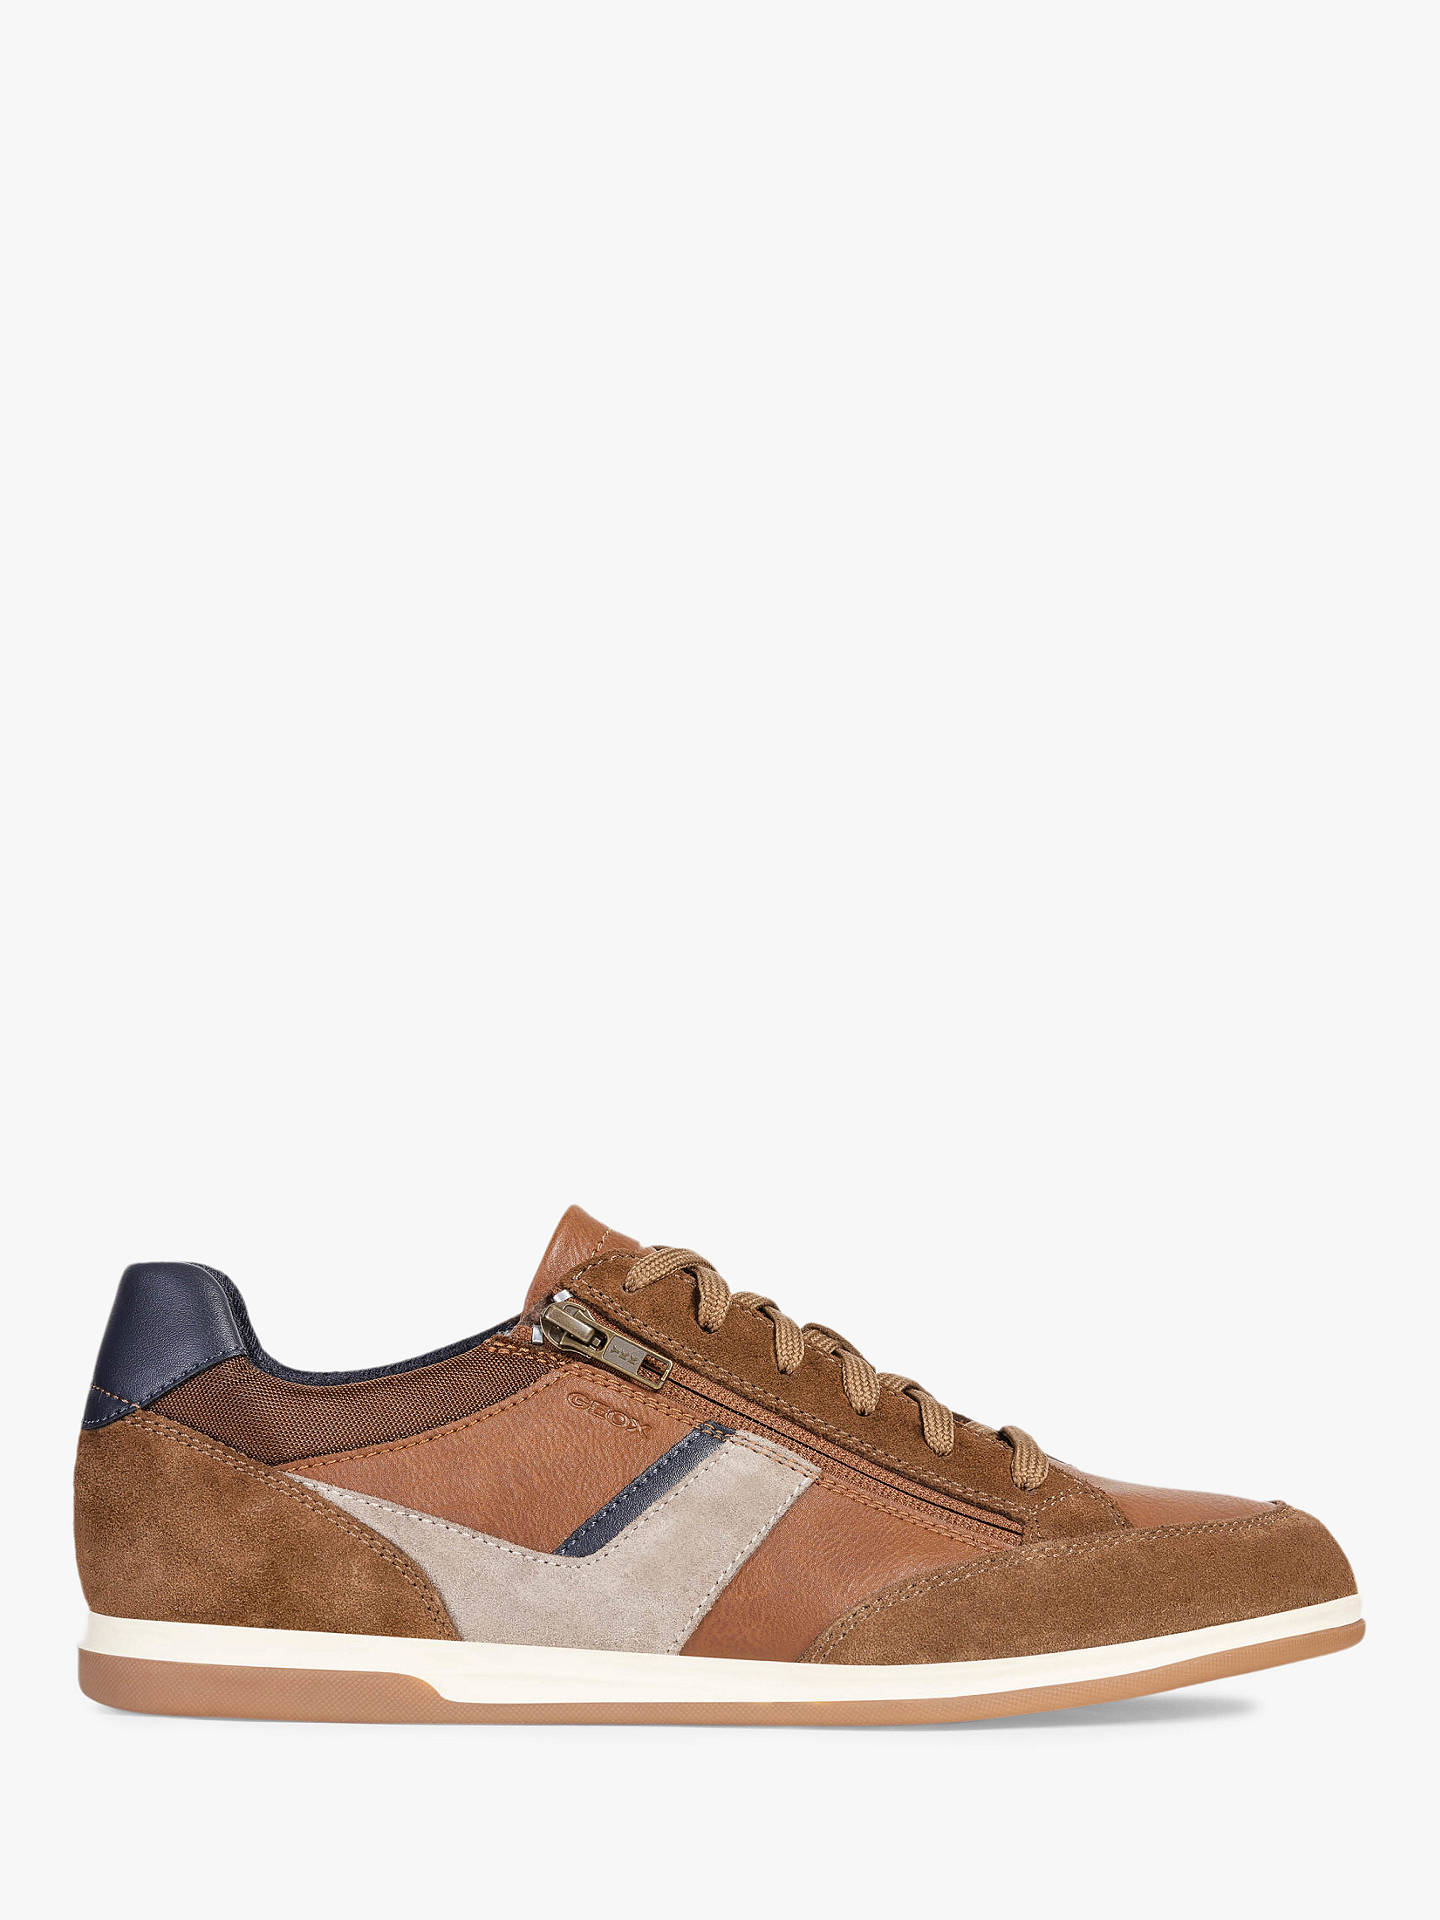 cc80e9bb8471cd Buy Geox Renan Leather Zip Detail Trainers, Brown, 7 Online at  johnlewis.com ...